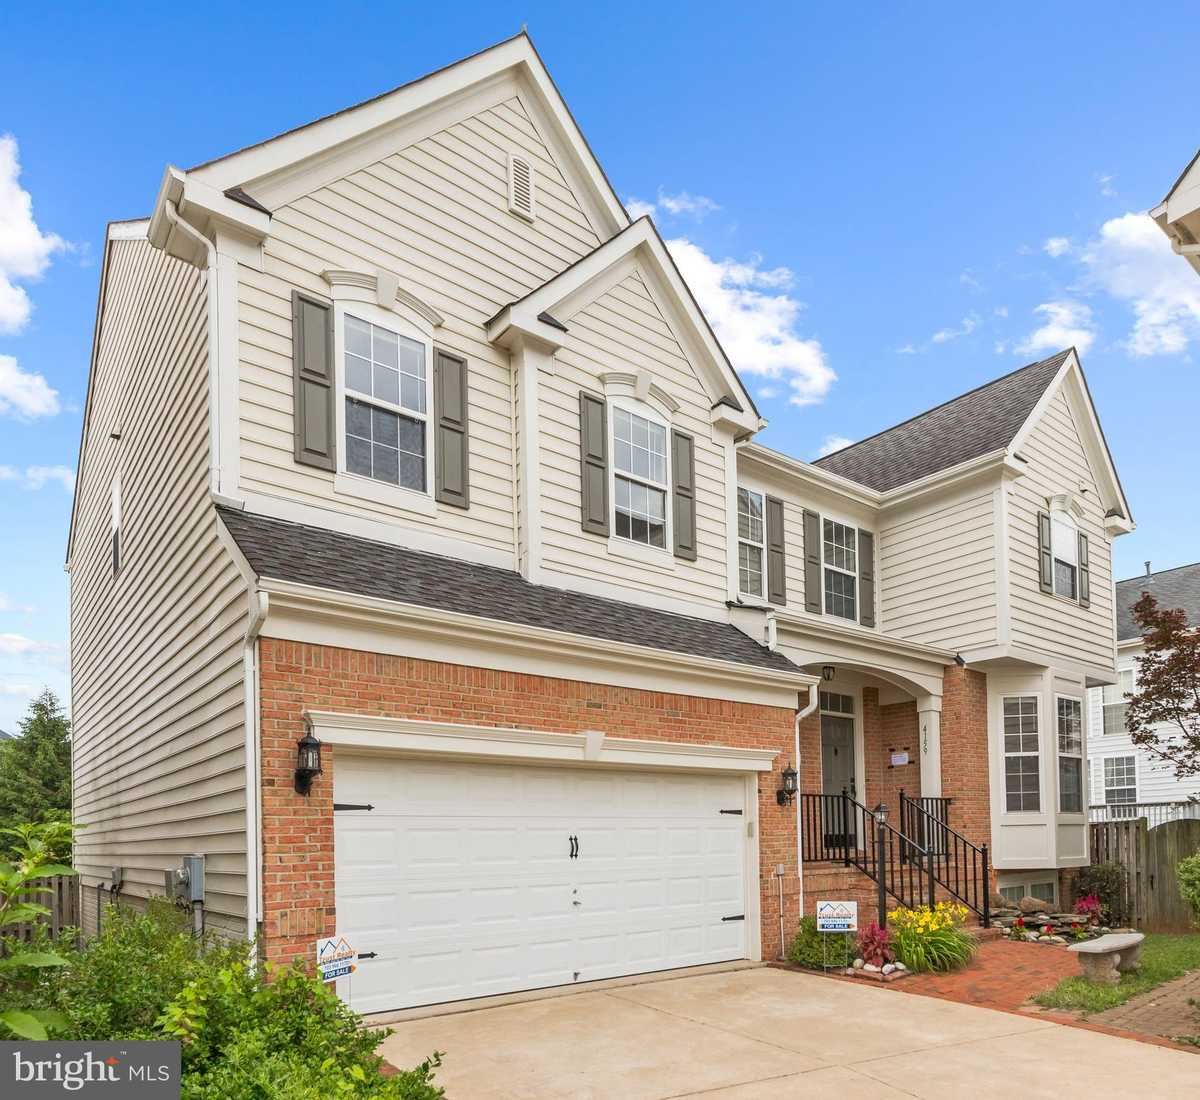 $800,000 - 6Br/4Ba -  for Sale in Rockland Village, Chantilly